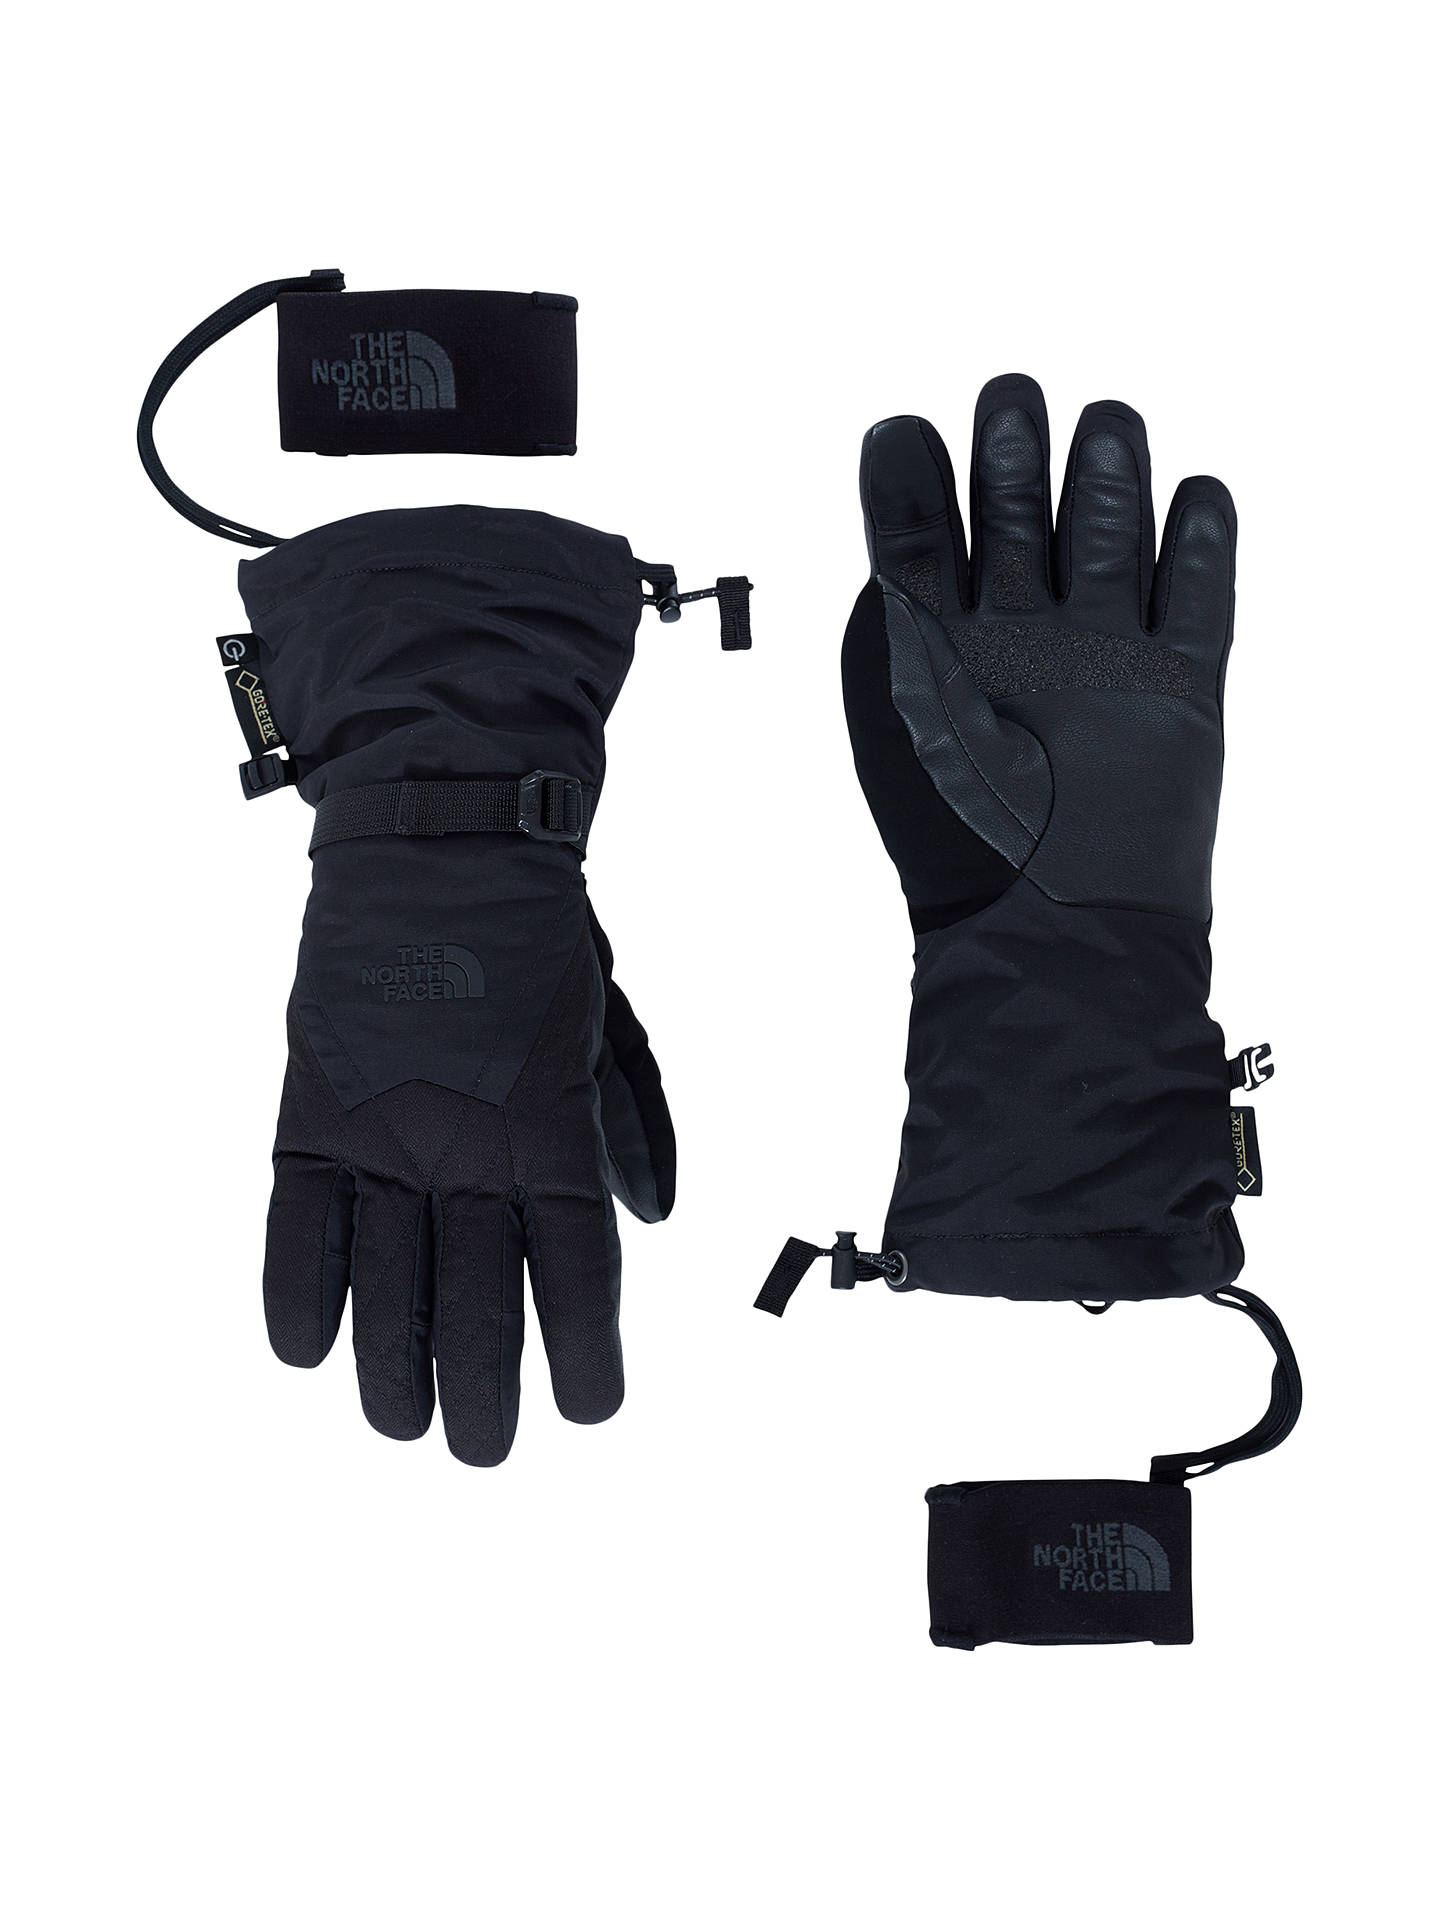 1c0e91363 The North Face Montana Etip Women's GORE-TEX Ski Gloves, Black at ...